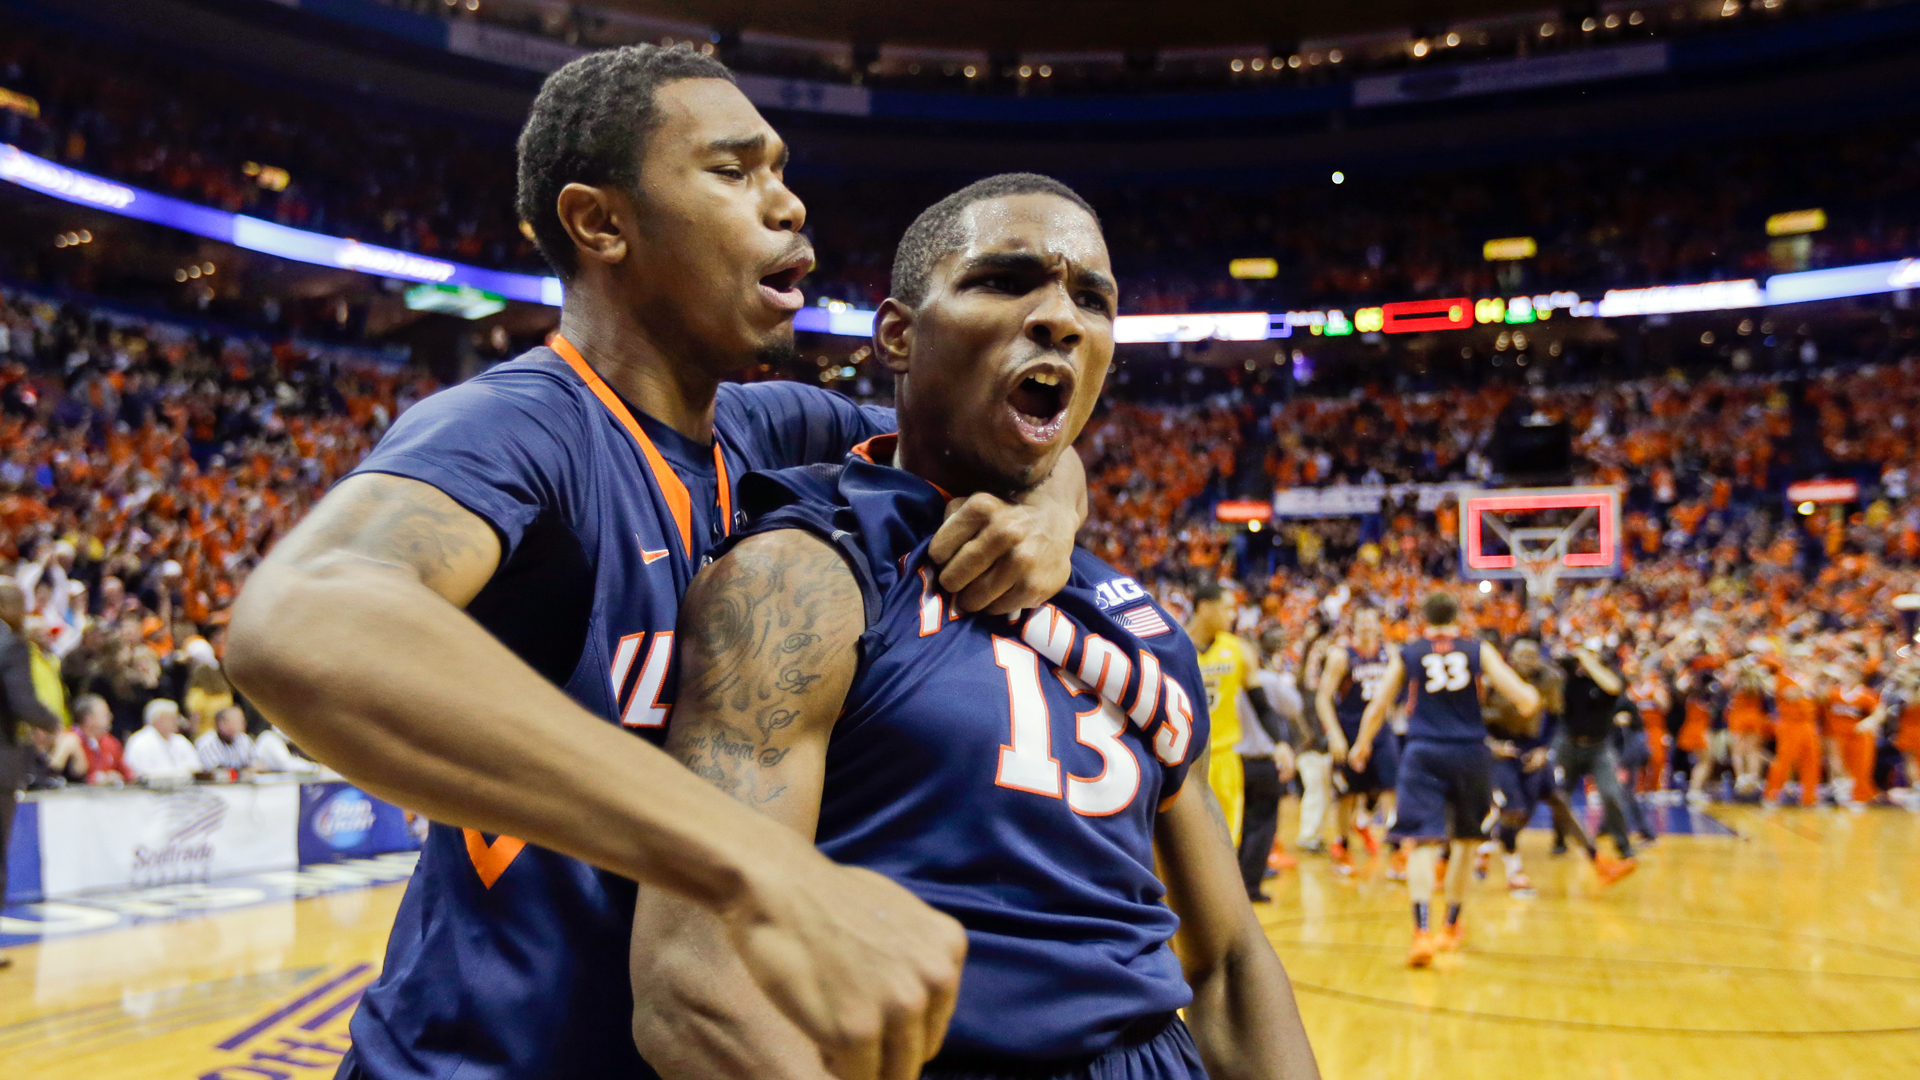 Illinois Basketball-122113-AP-FTR.jpg